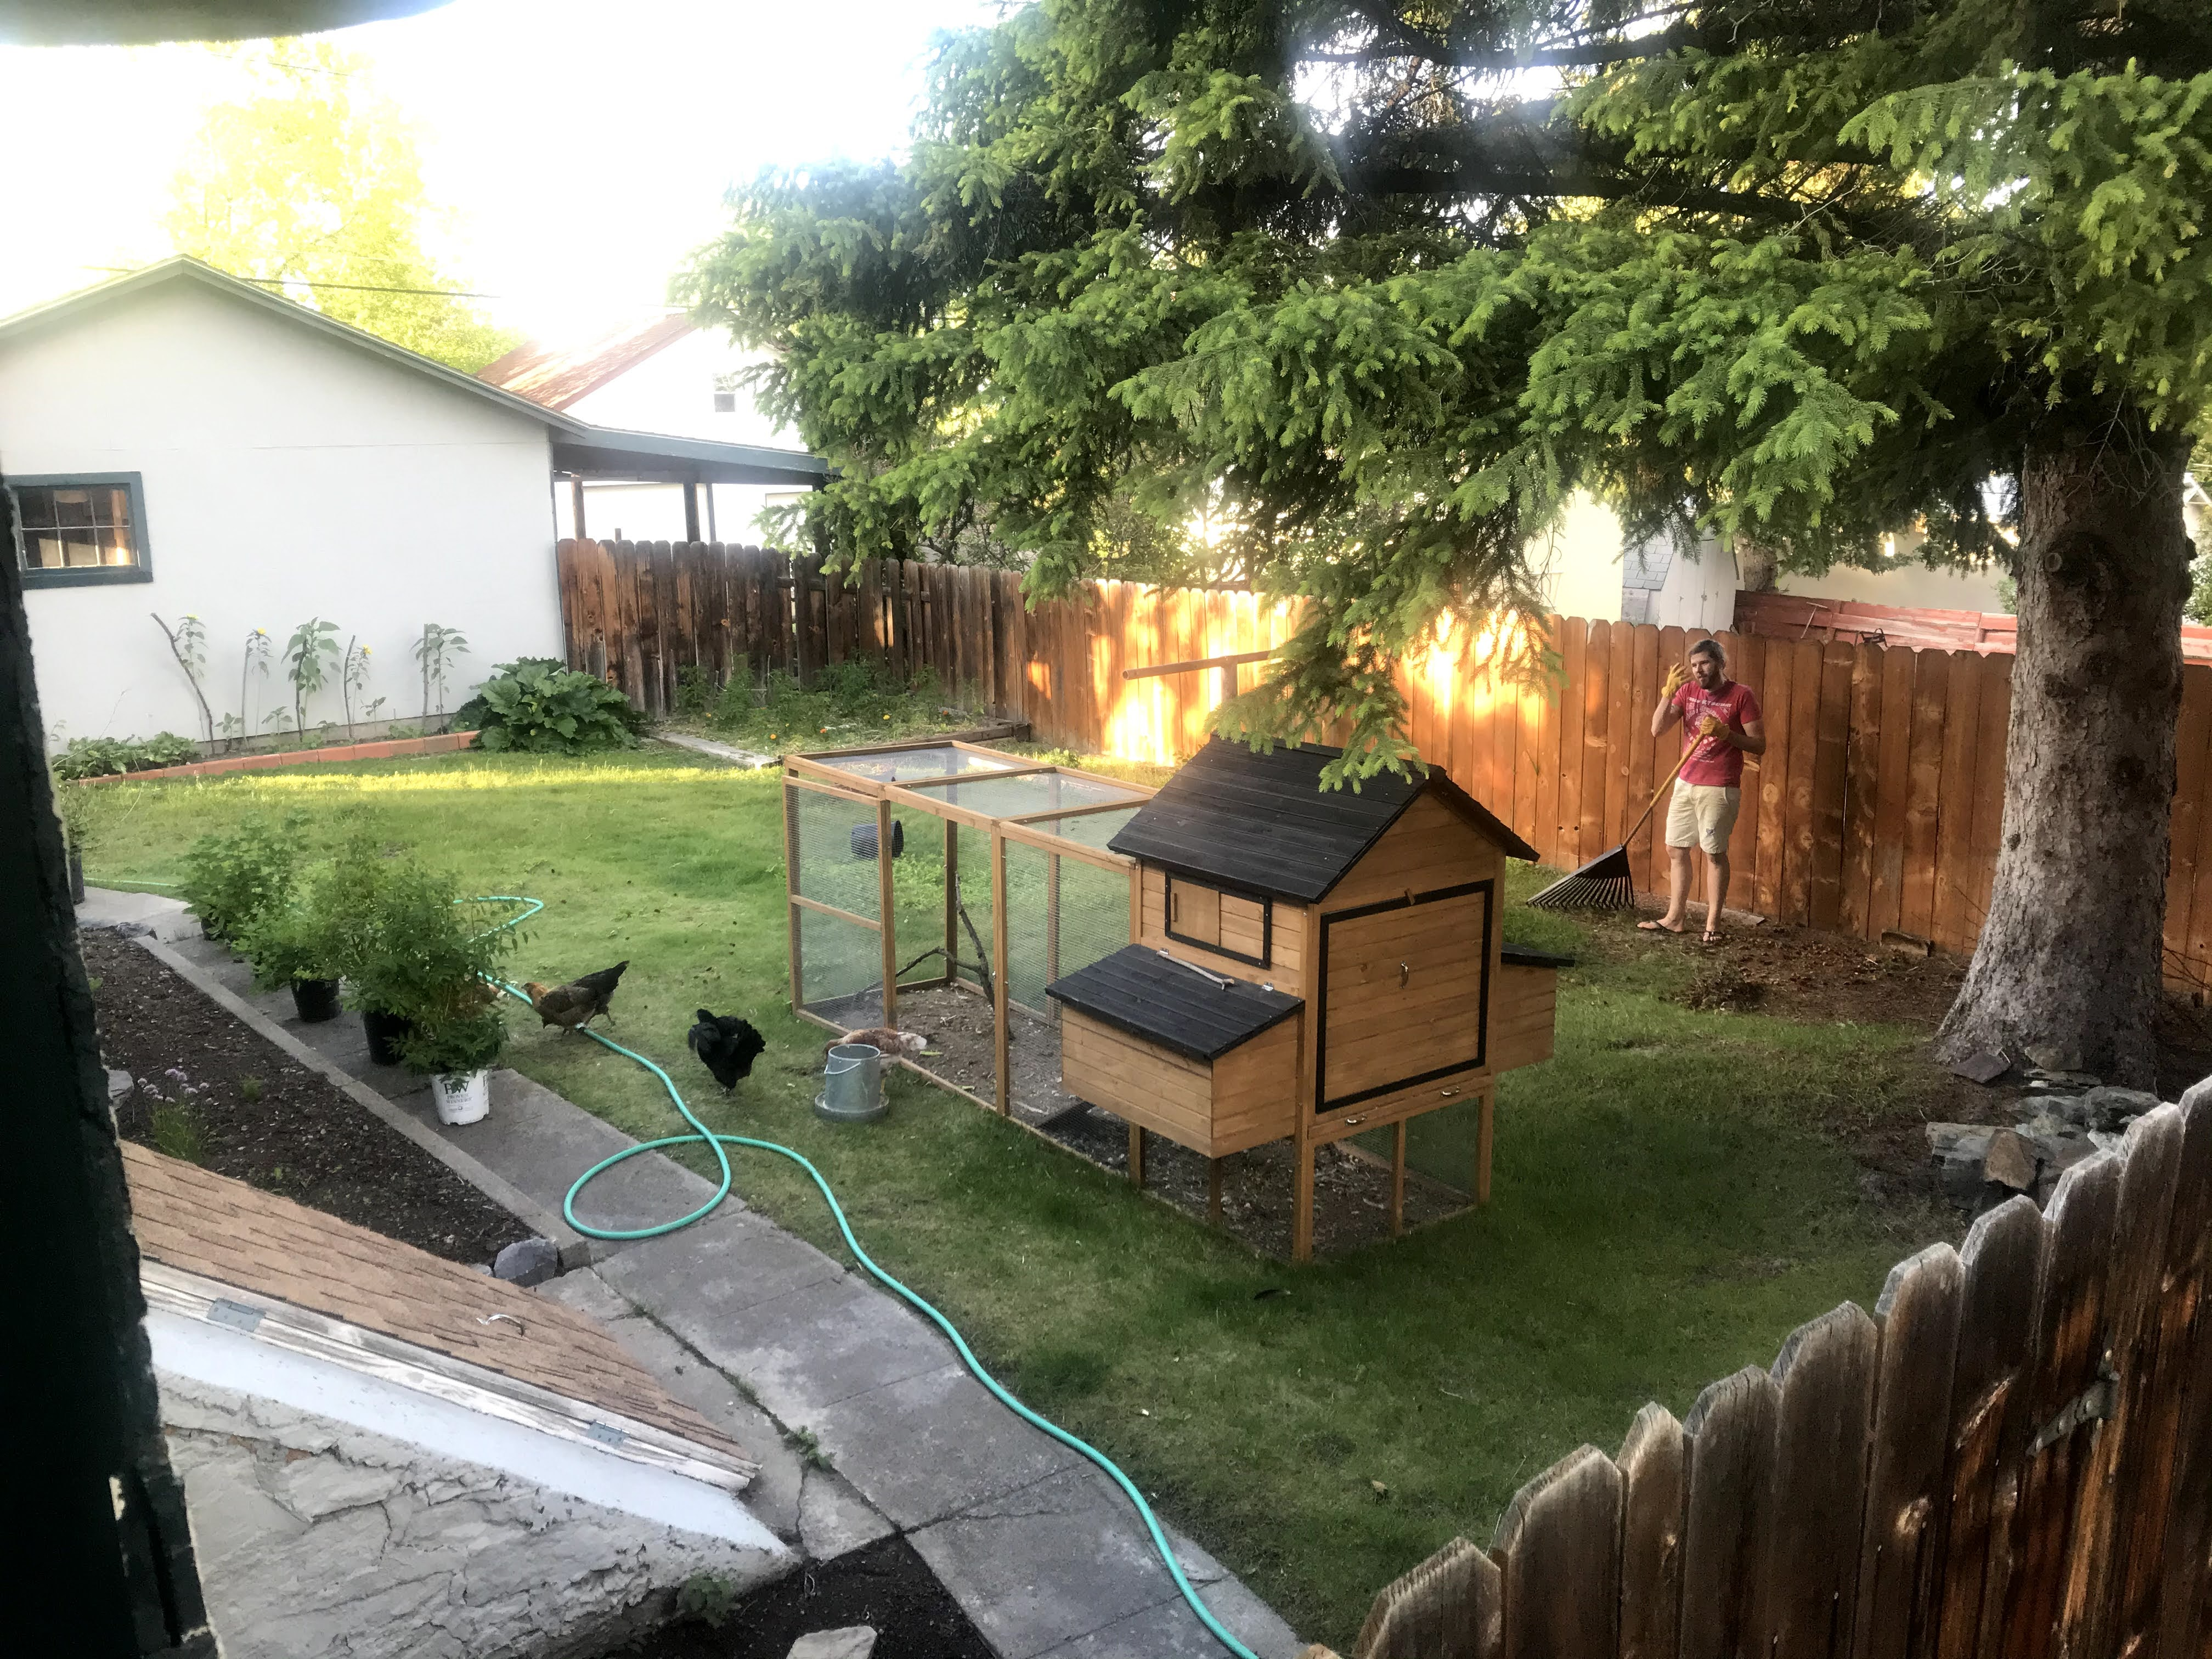 lawn area with chicken coop and chickens foraging